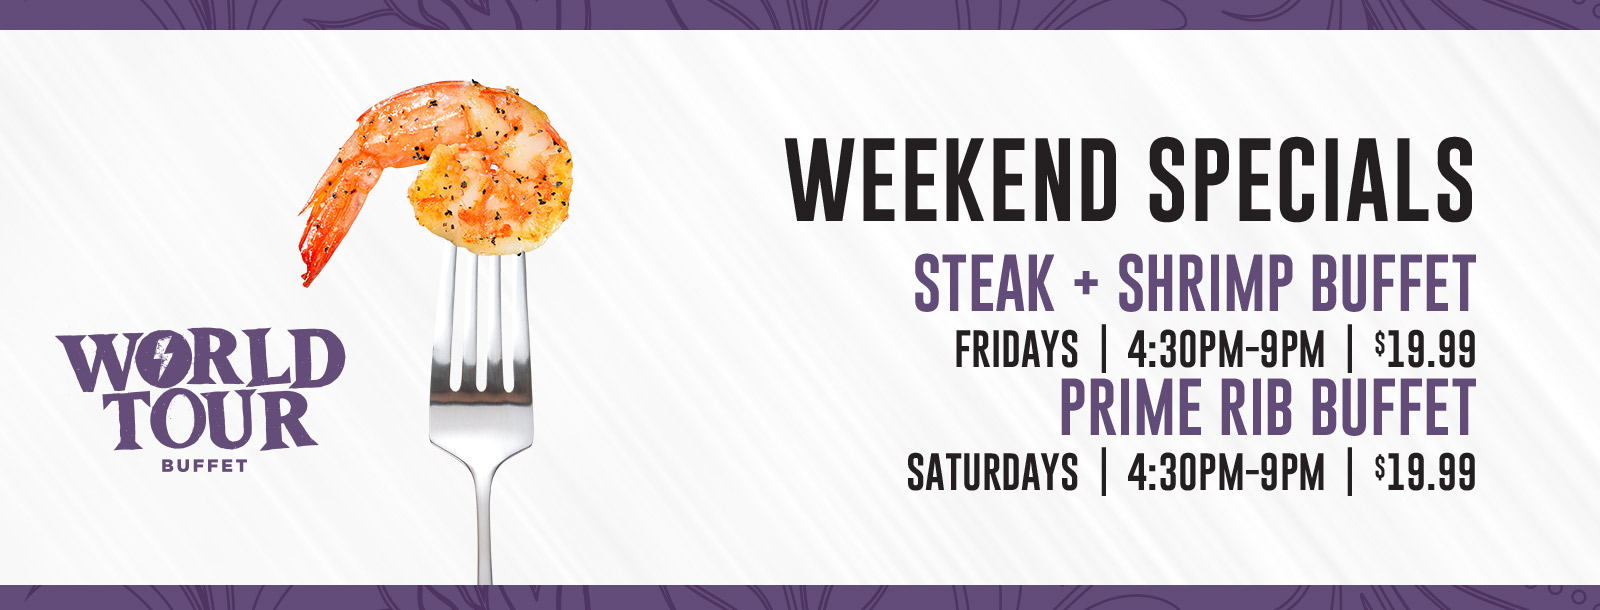 weekend specials world tour buffet